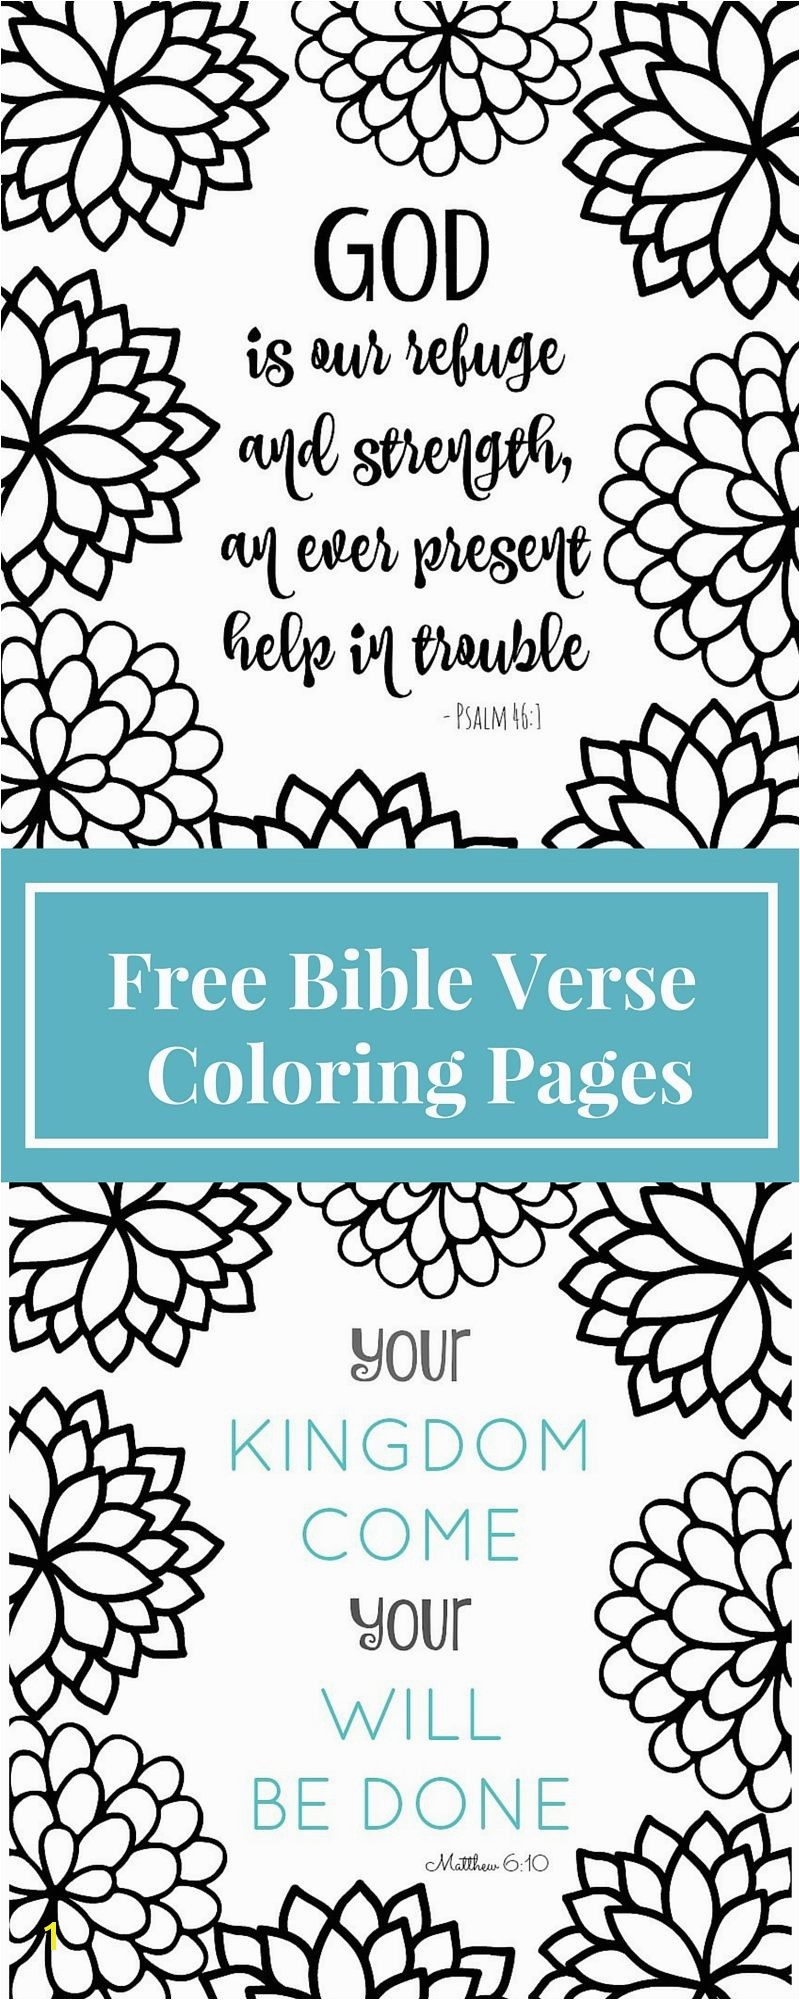 Coloring pages are for grown ups now These Bible verse coloring page printables are fun & relaxing to color This blog has tons of free printable adult